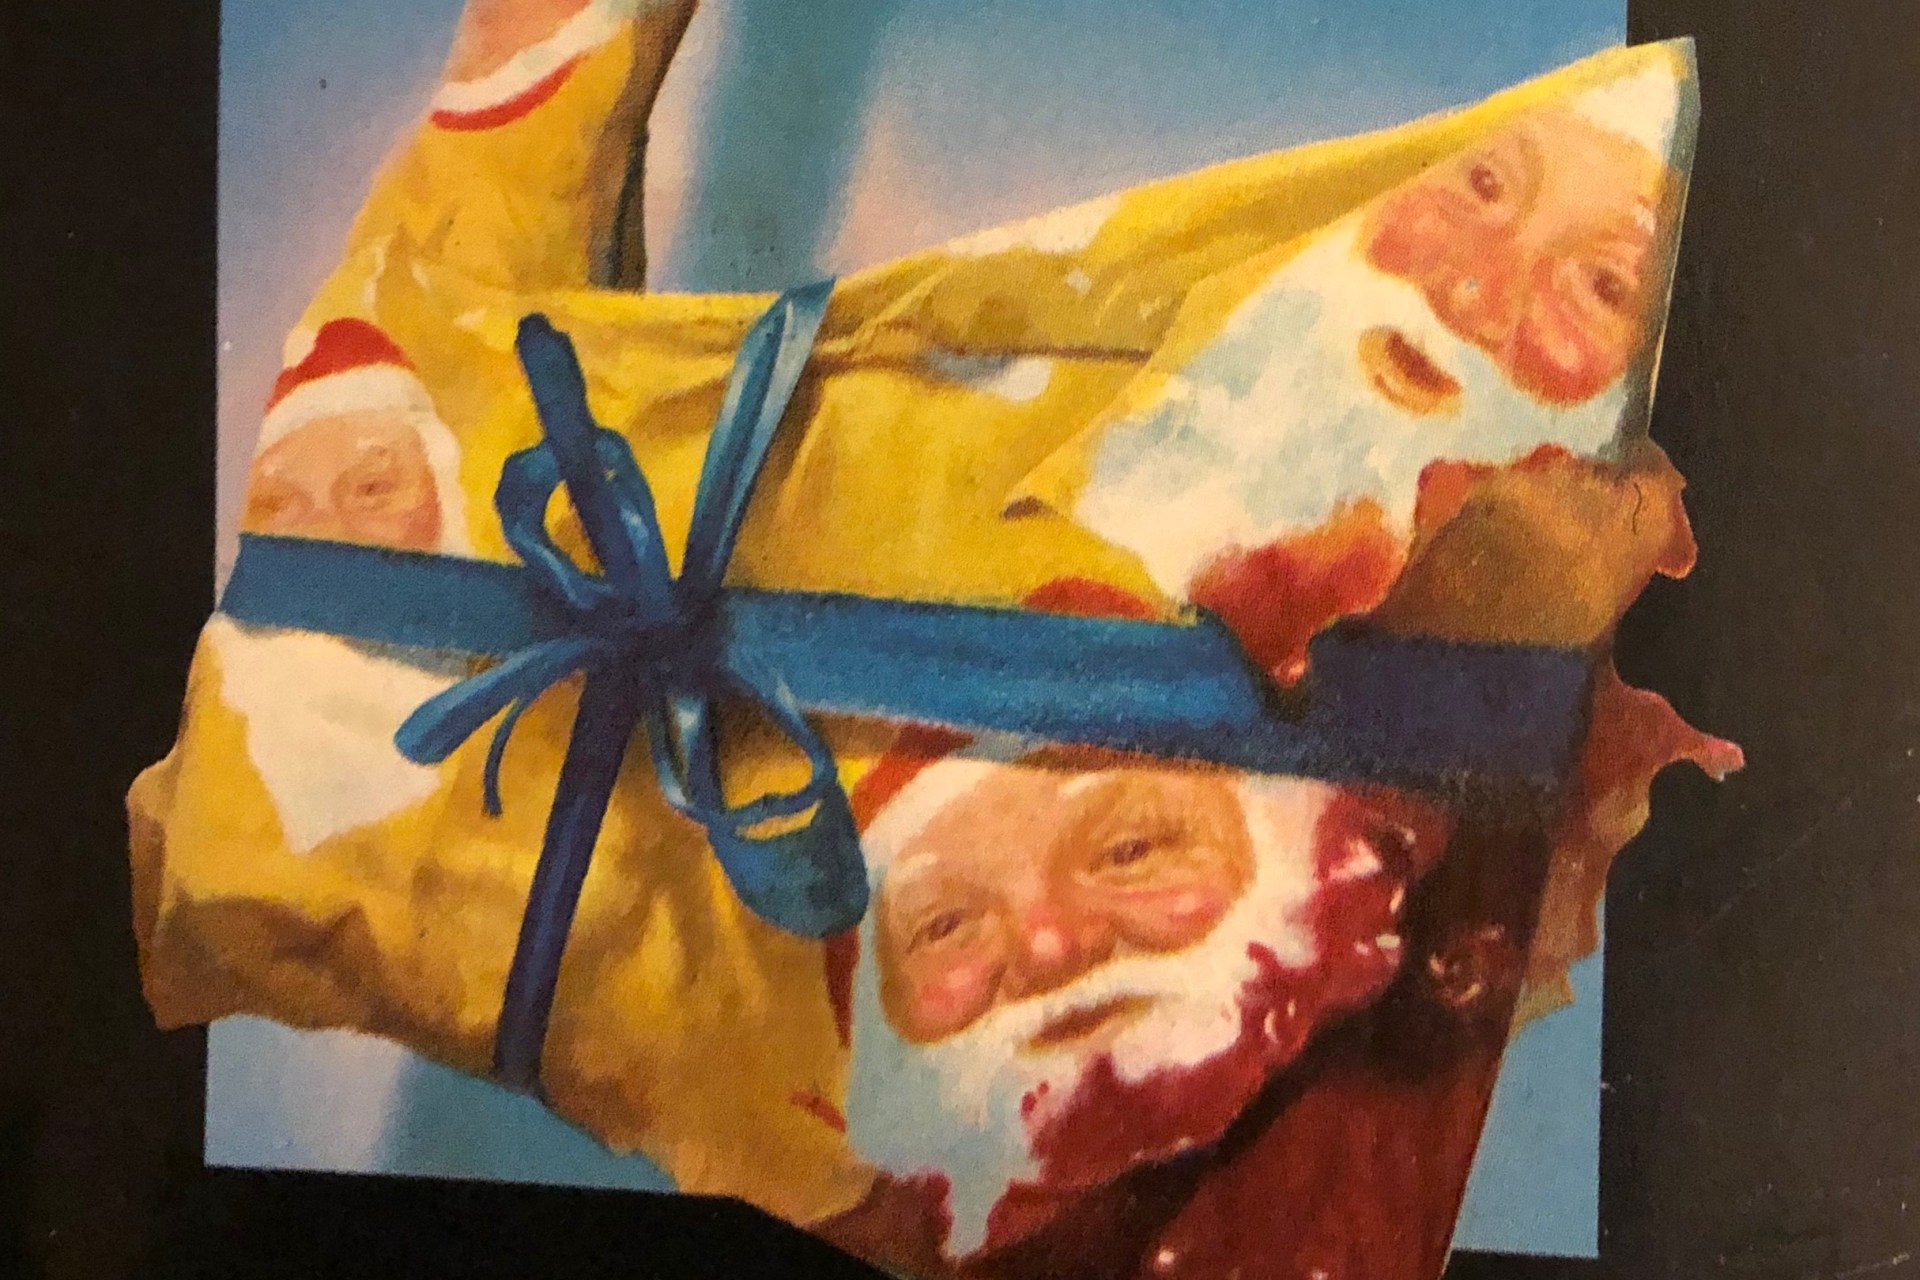 Close up shot of an illustrated bloody ax covered in wrapping paper.